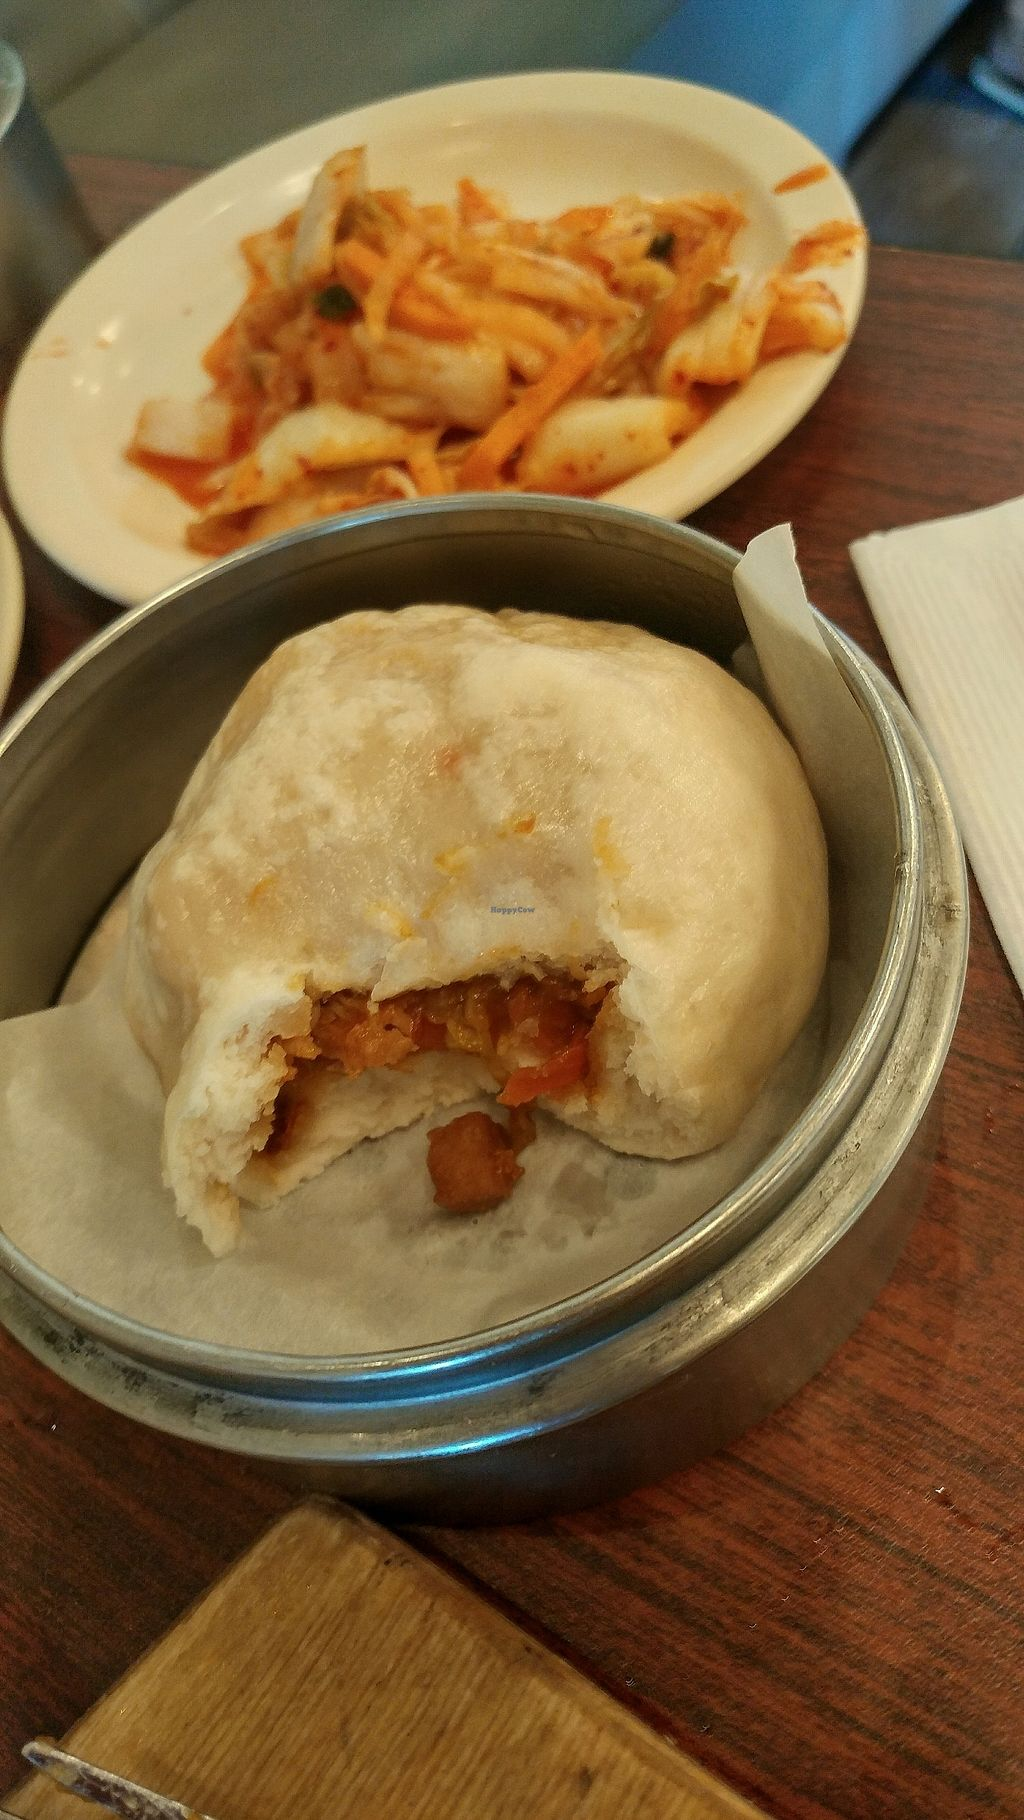 """Photo of Veggie Heaven  by <a href=""""/members/profile/TreyLegall"""">TreyLegall</a> <br/>Kimchi Steamed Bun <br/> October 8, 2017  - <a href='/contact/abuse/image/2515/312988'>Report</a>"""